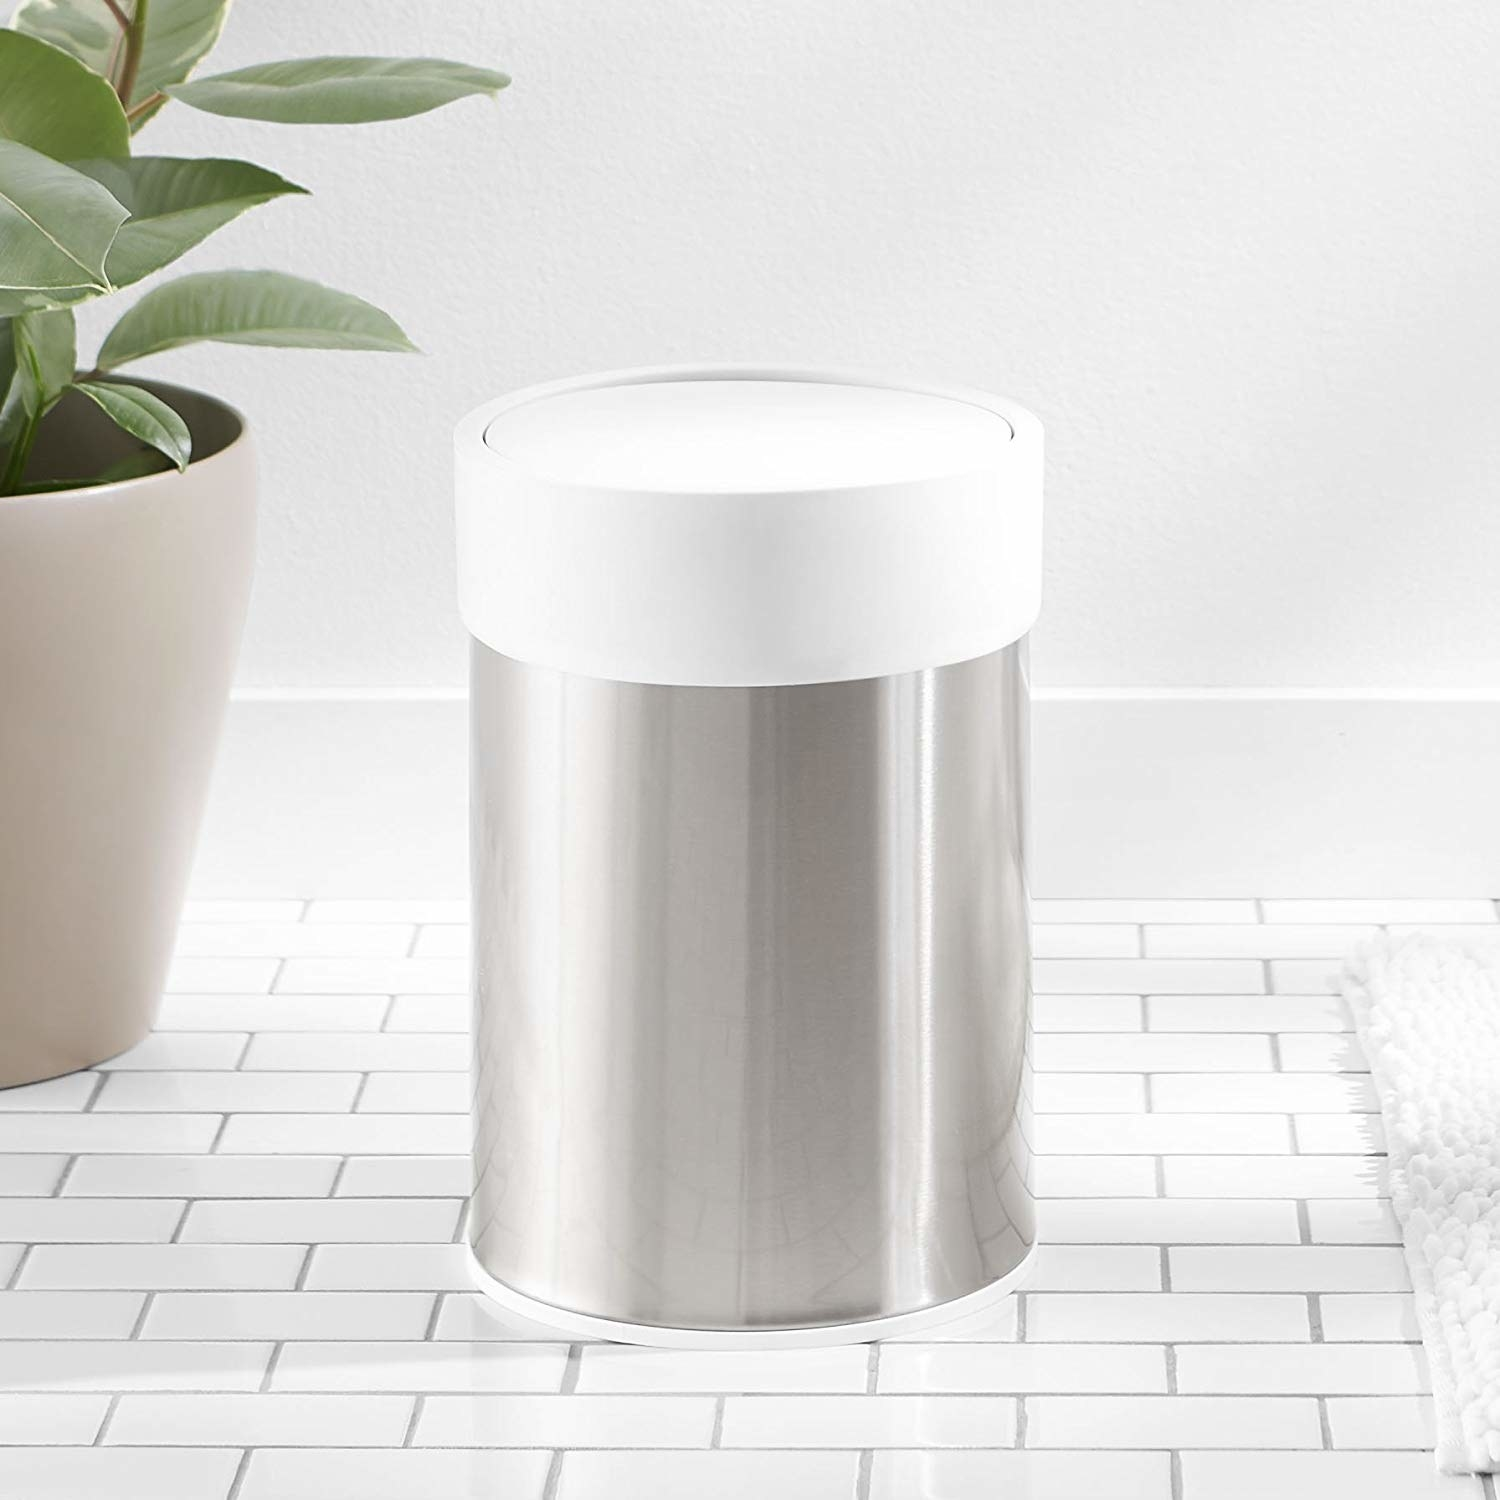 Amazon Basics stainless steel trashcan with a white lid